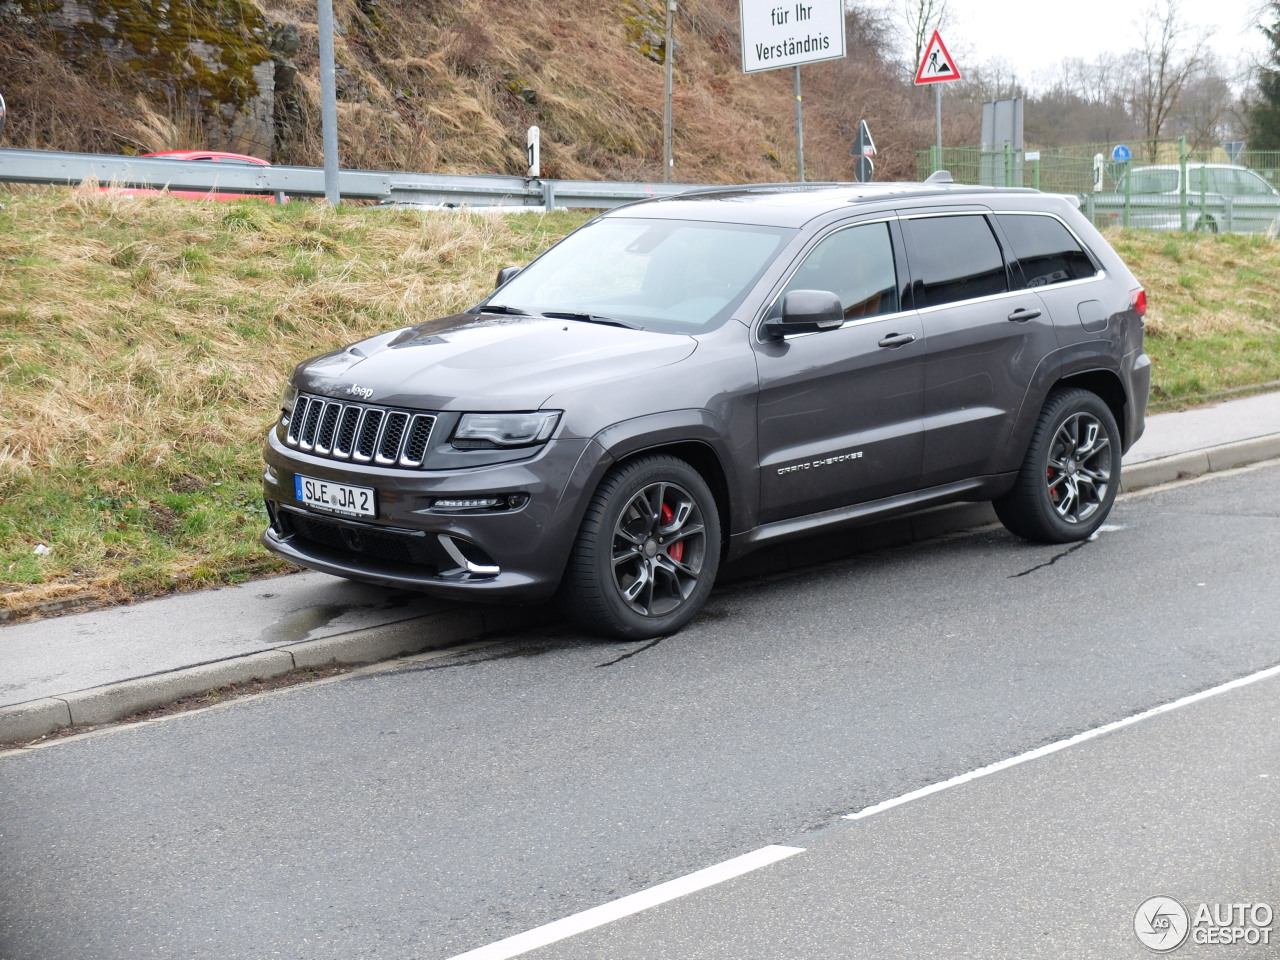 jeep grand cherokee srt 8 2013 26 march 2015 autogespot. Black Bedroom Furniture Sets. Home Design Ideas